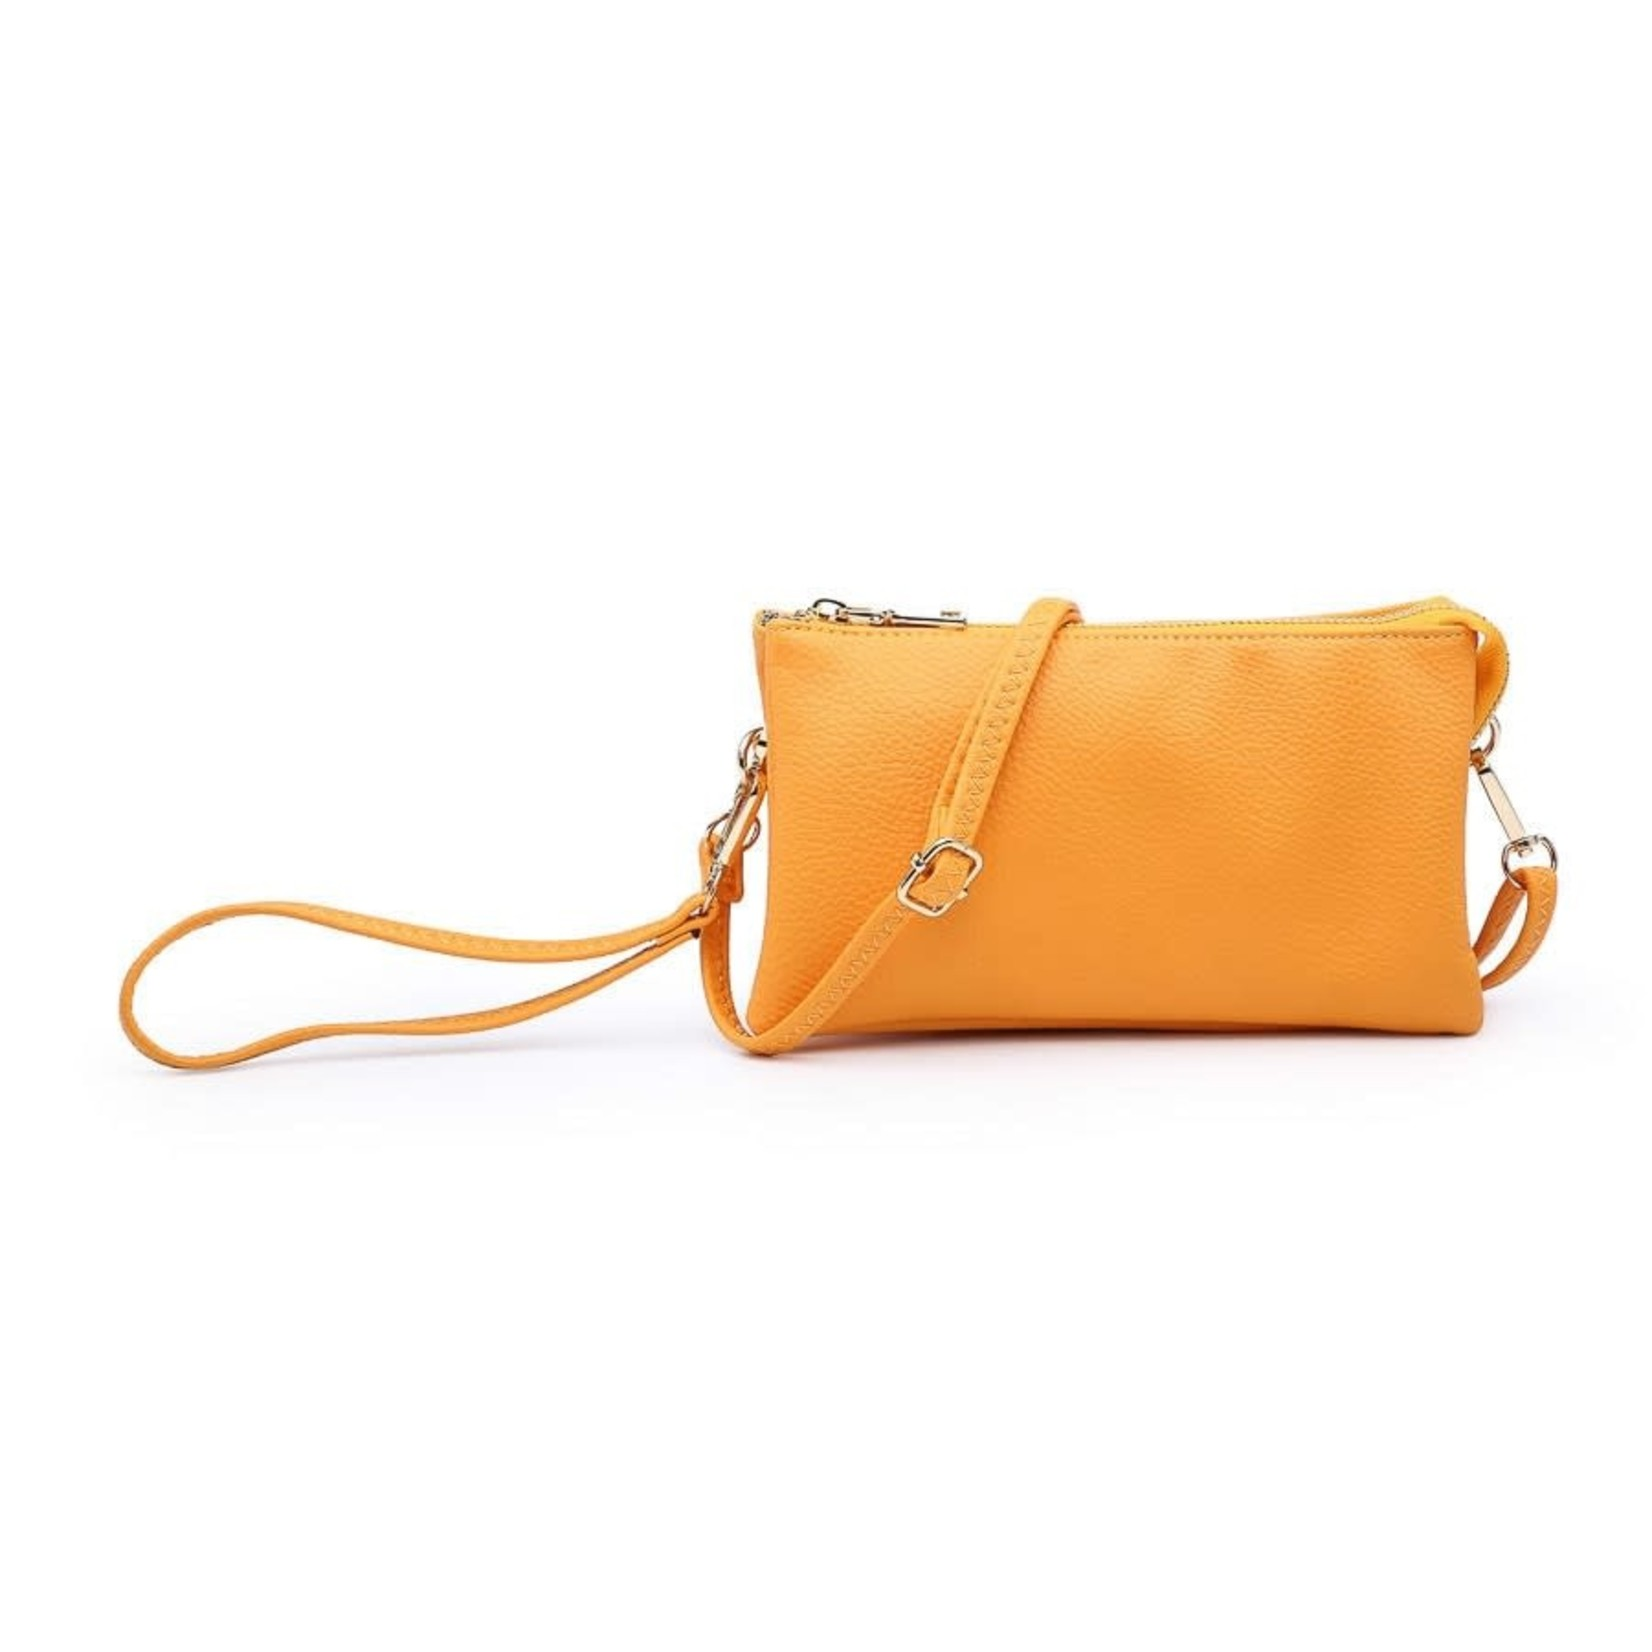 Riley - Vegan Leather Double-Sided Wristlet/Crossbody - Lt Orange(LOR)